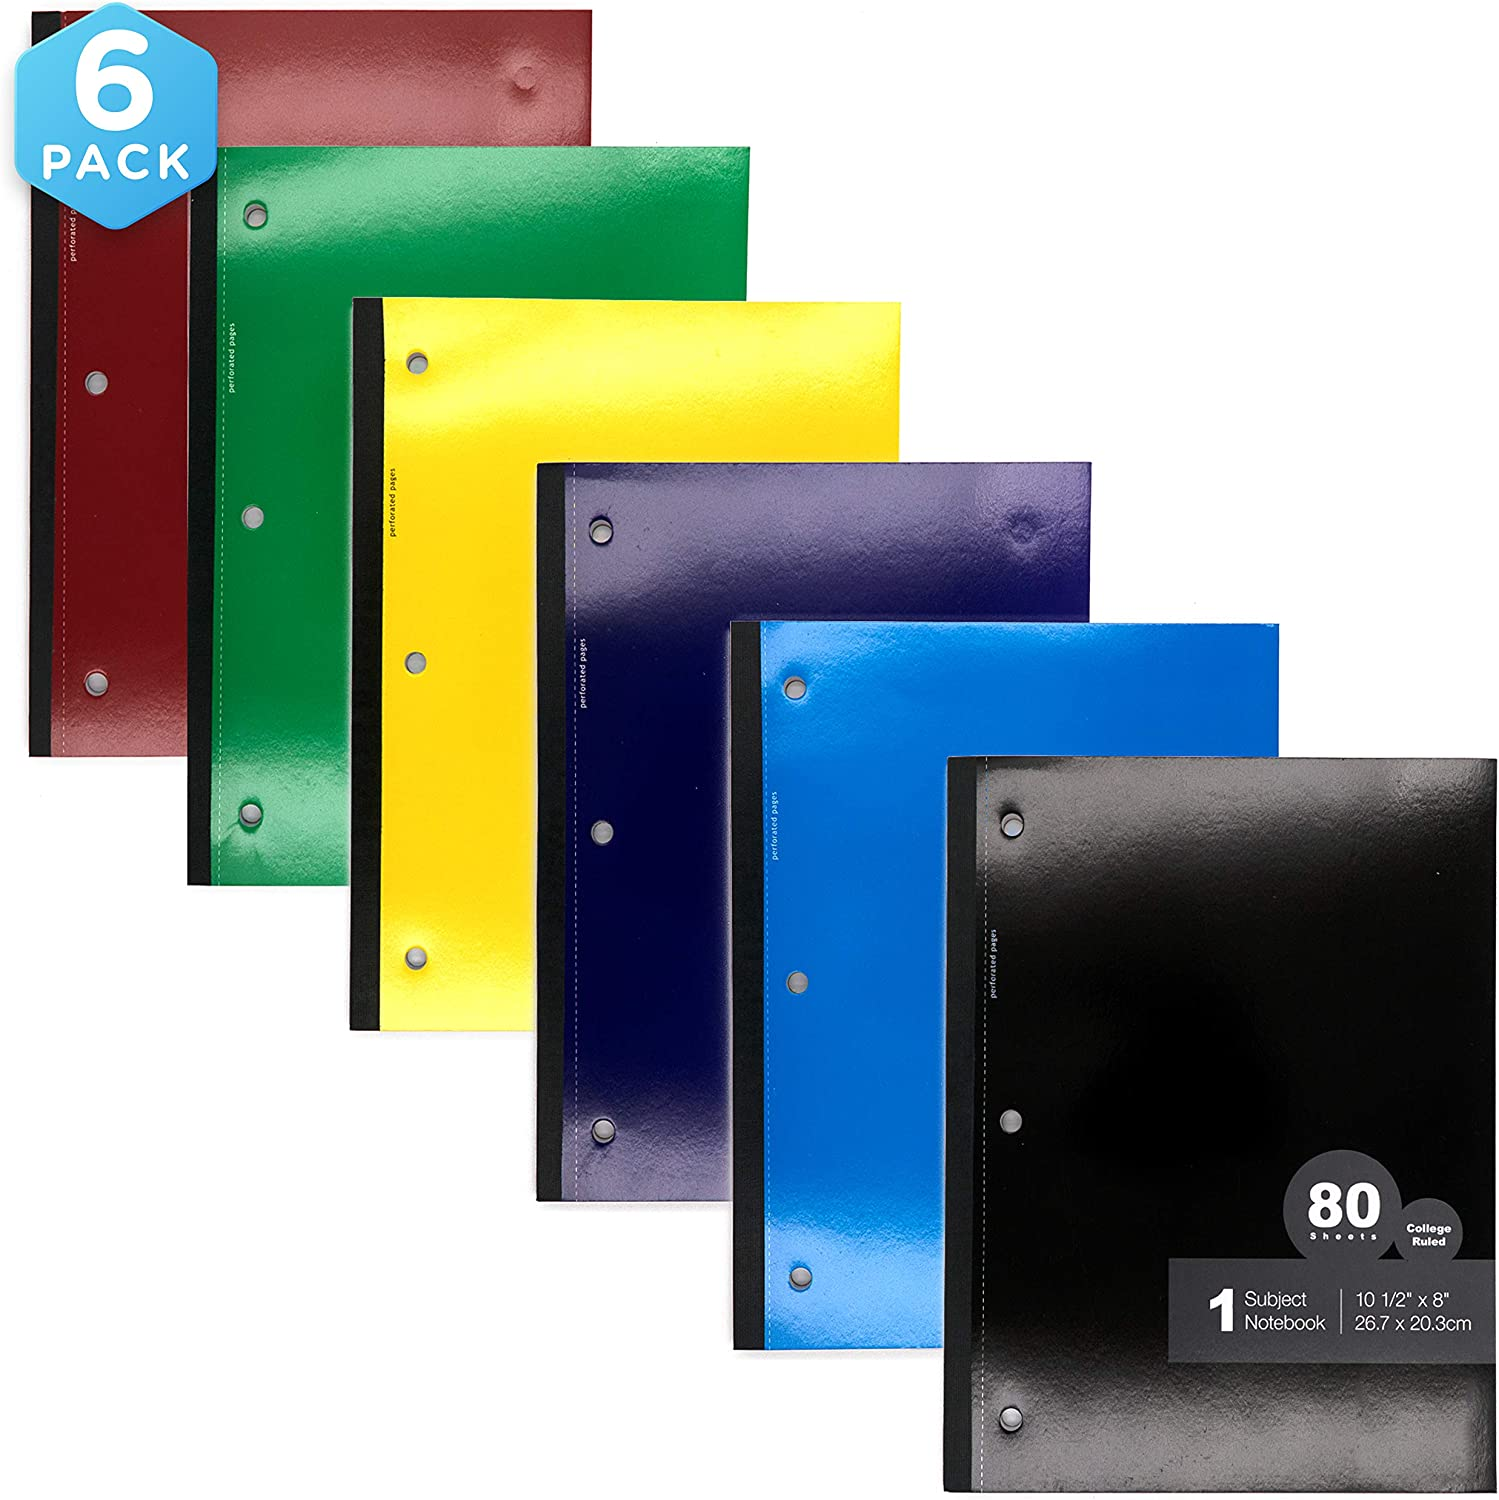 Emraw Wireless Notebook 80 Sheets 3 Hole College Ruled Meeting Notebook Durable Laminated Cover Reversible Assorted Color Double Sided Paper Small Notebook (6-Pack)